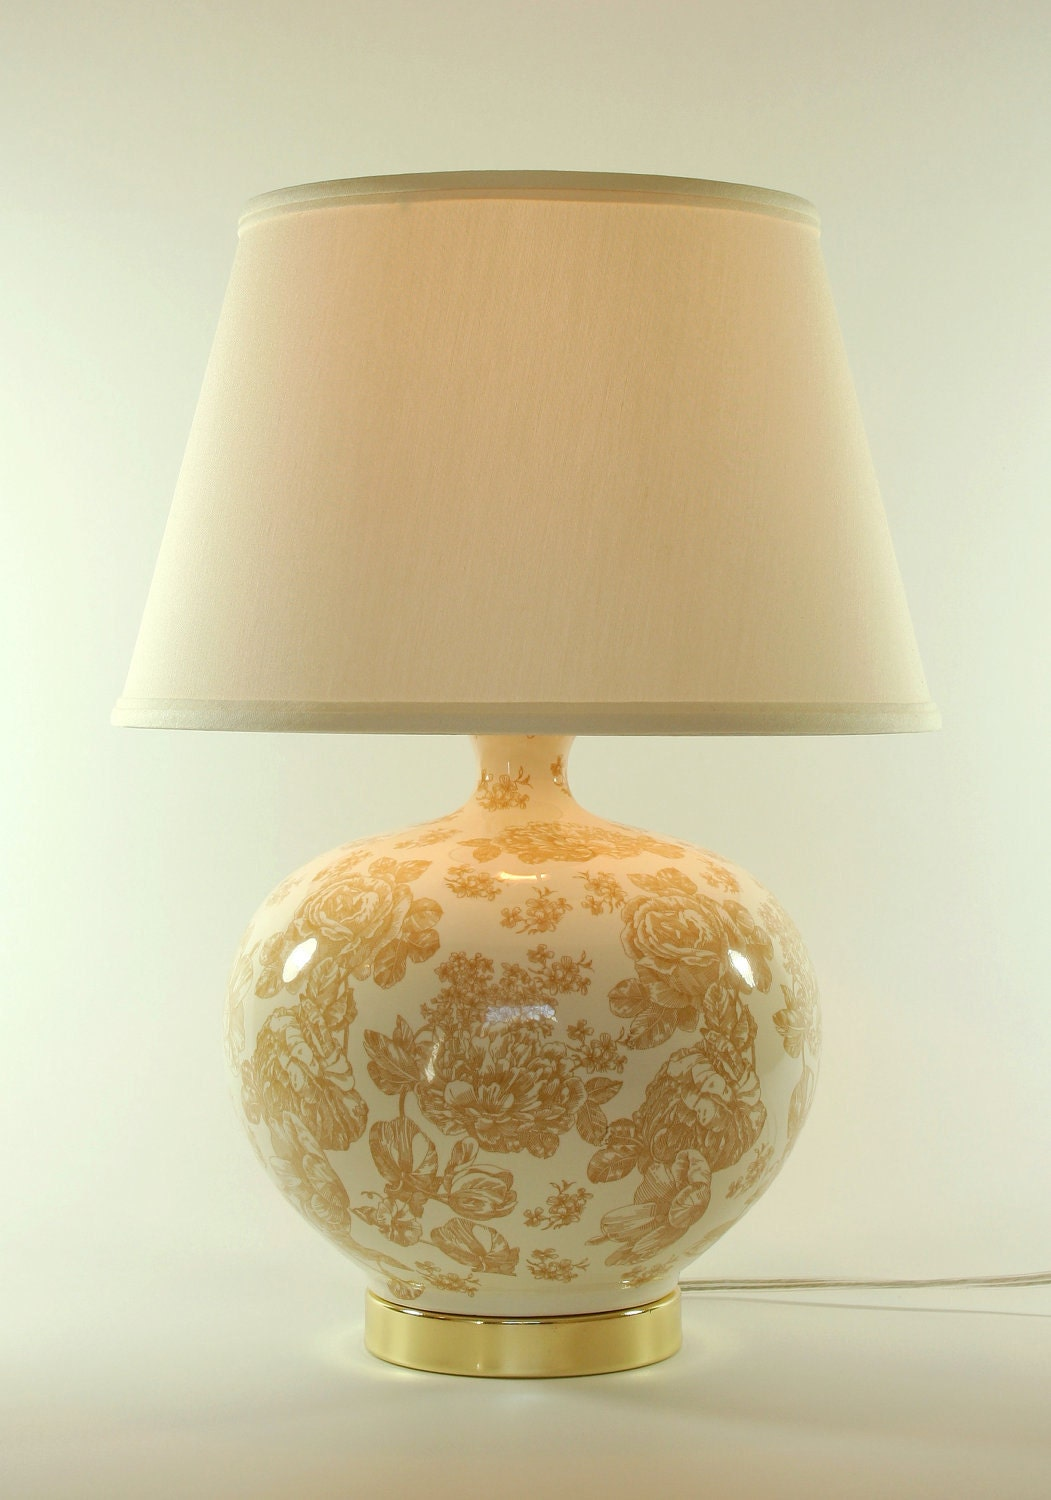 Cream Floral Toile Ceramic Lamp With Ivory Shade